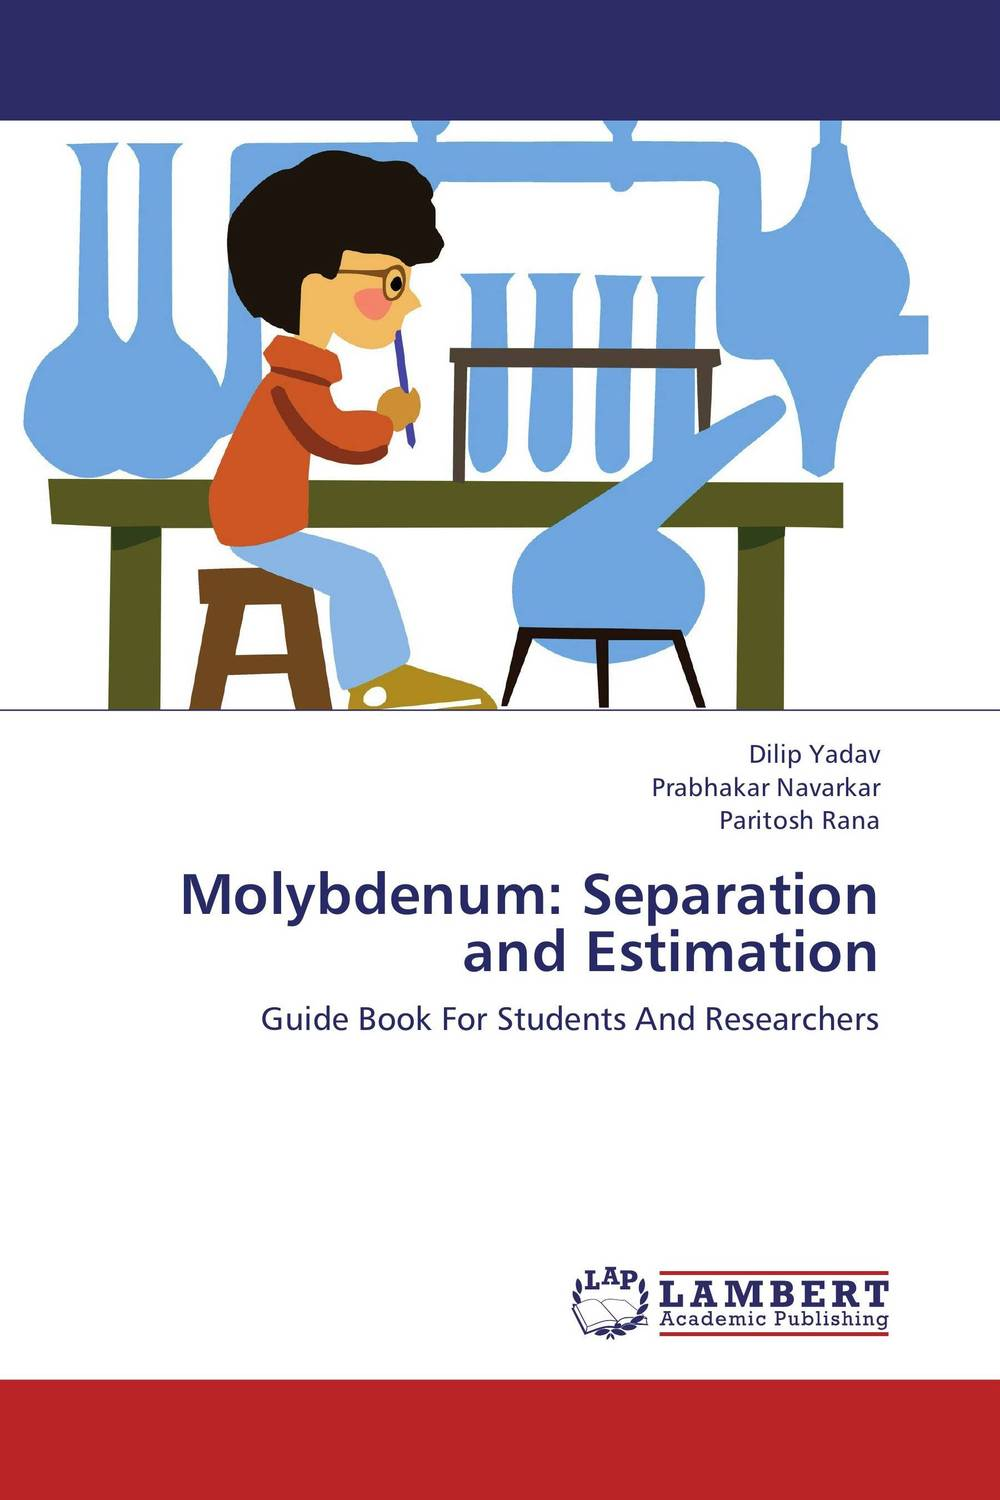 Molybdenum: Separation and Estimation oil separator integrates well the different techniques of oil separation in the design of its products